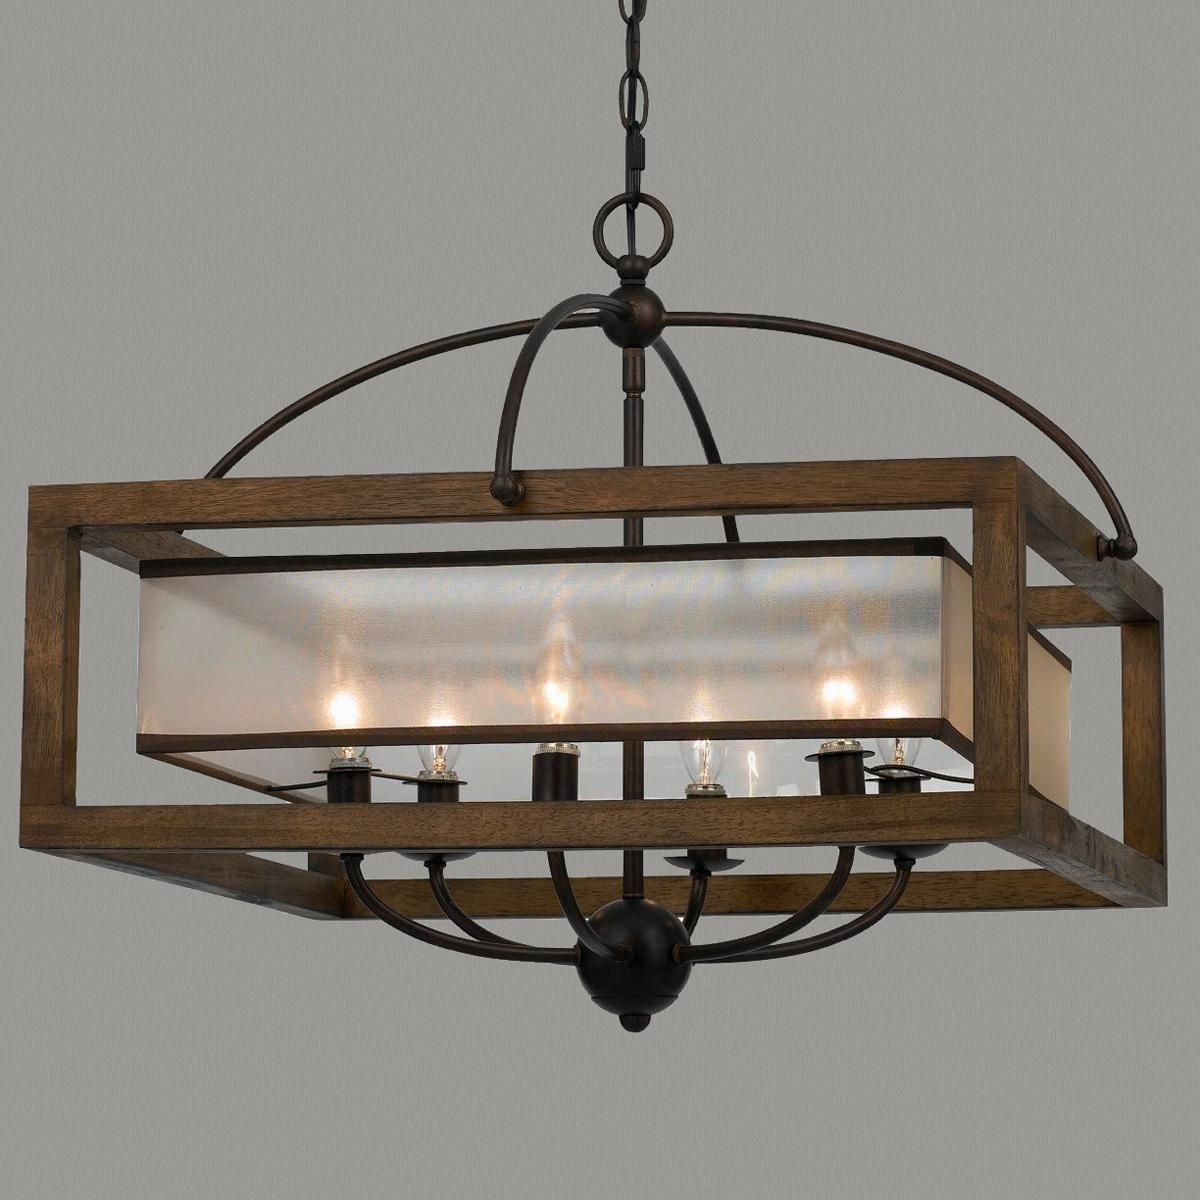 Square Wood Frame and Sheer Shade Chandelier Dining room